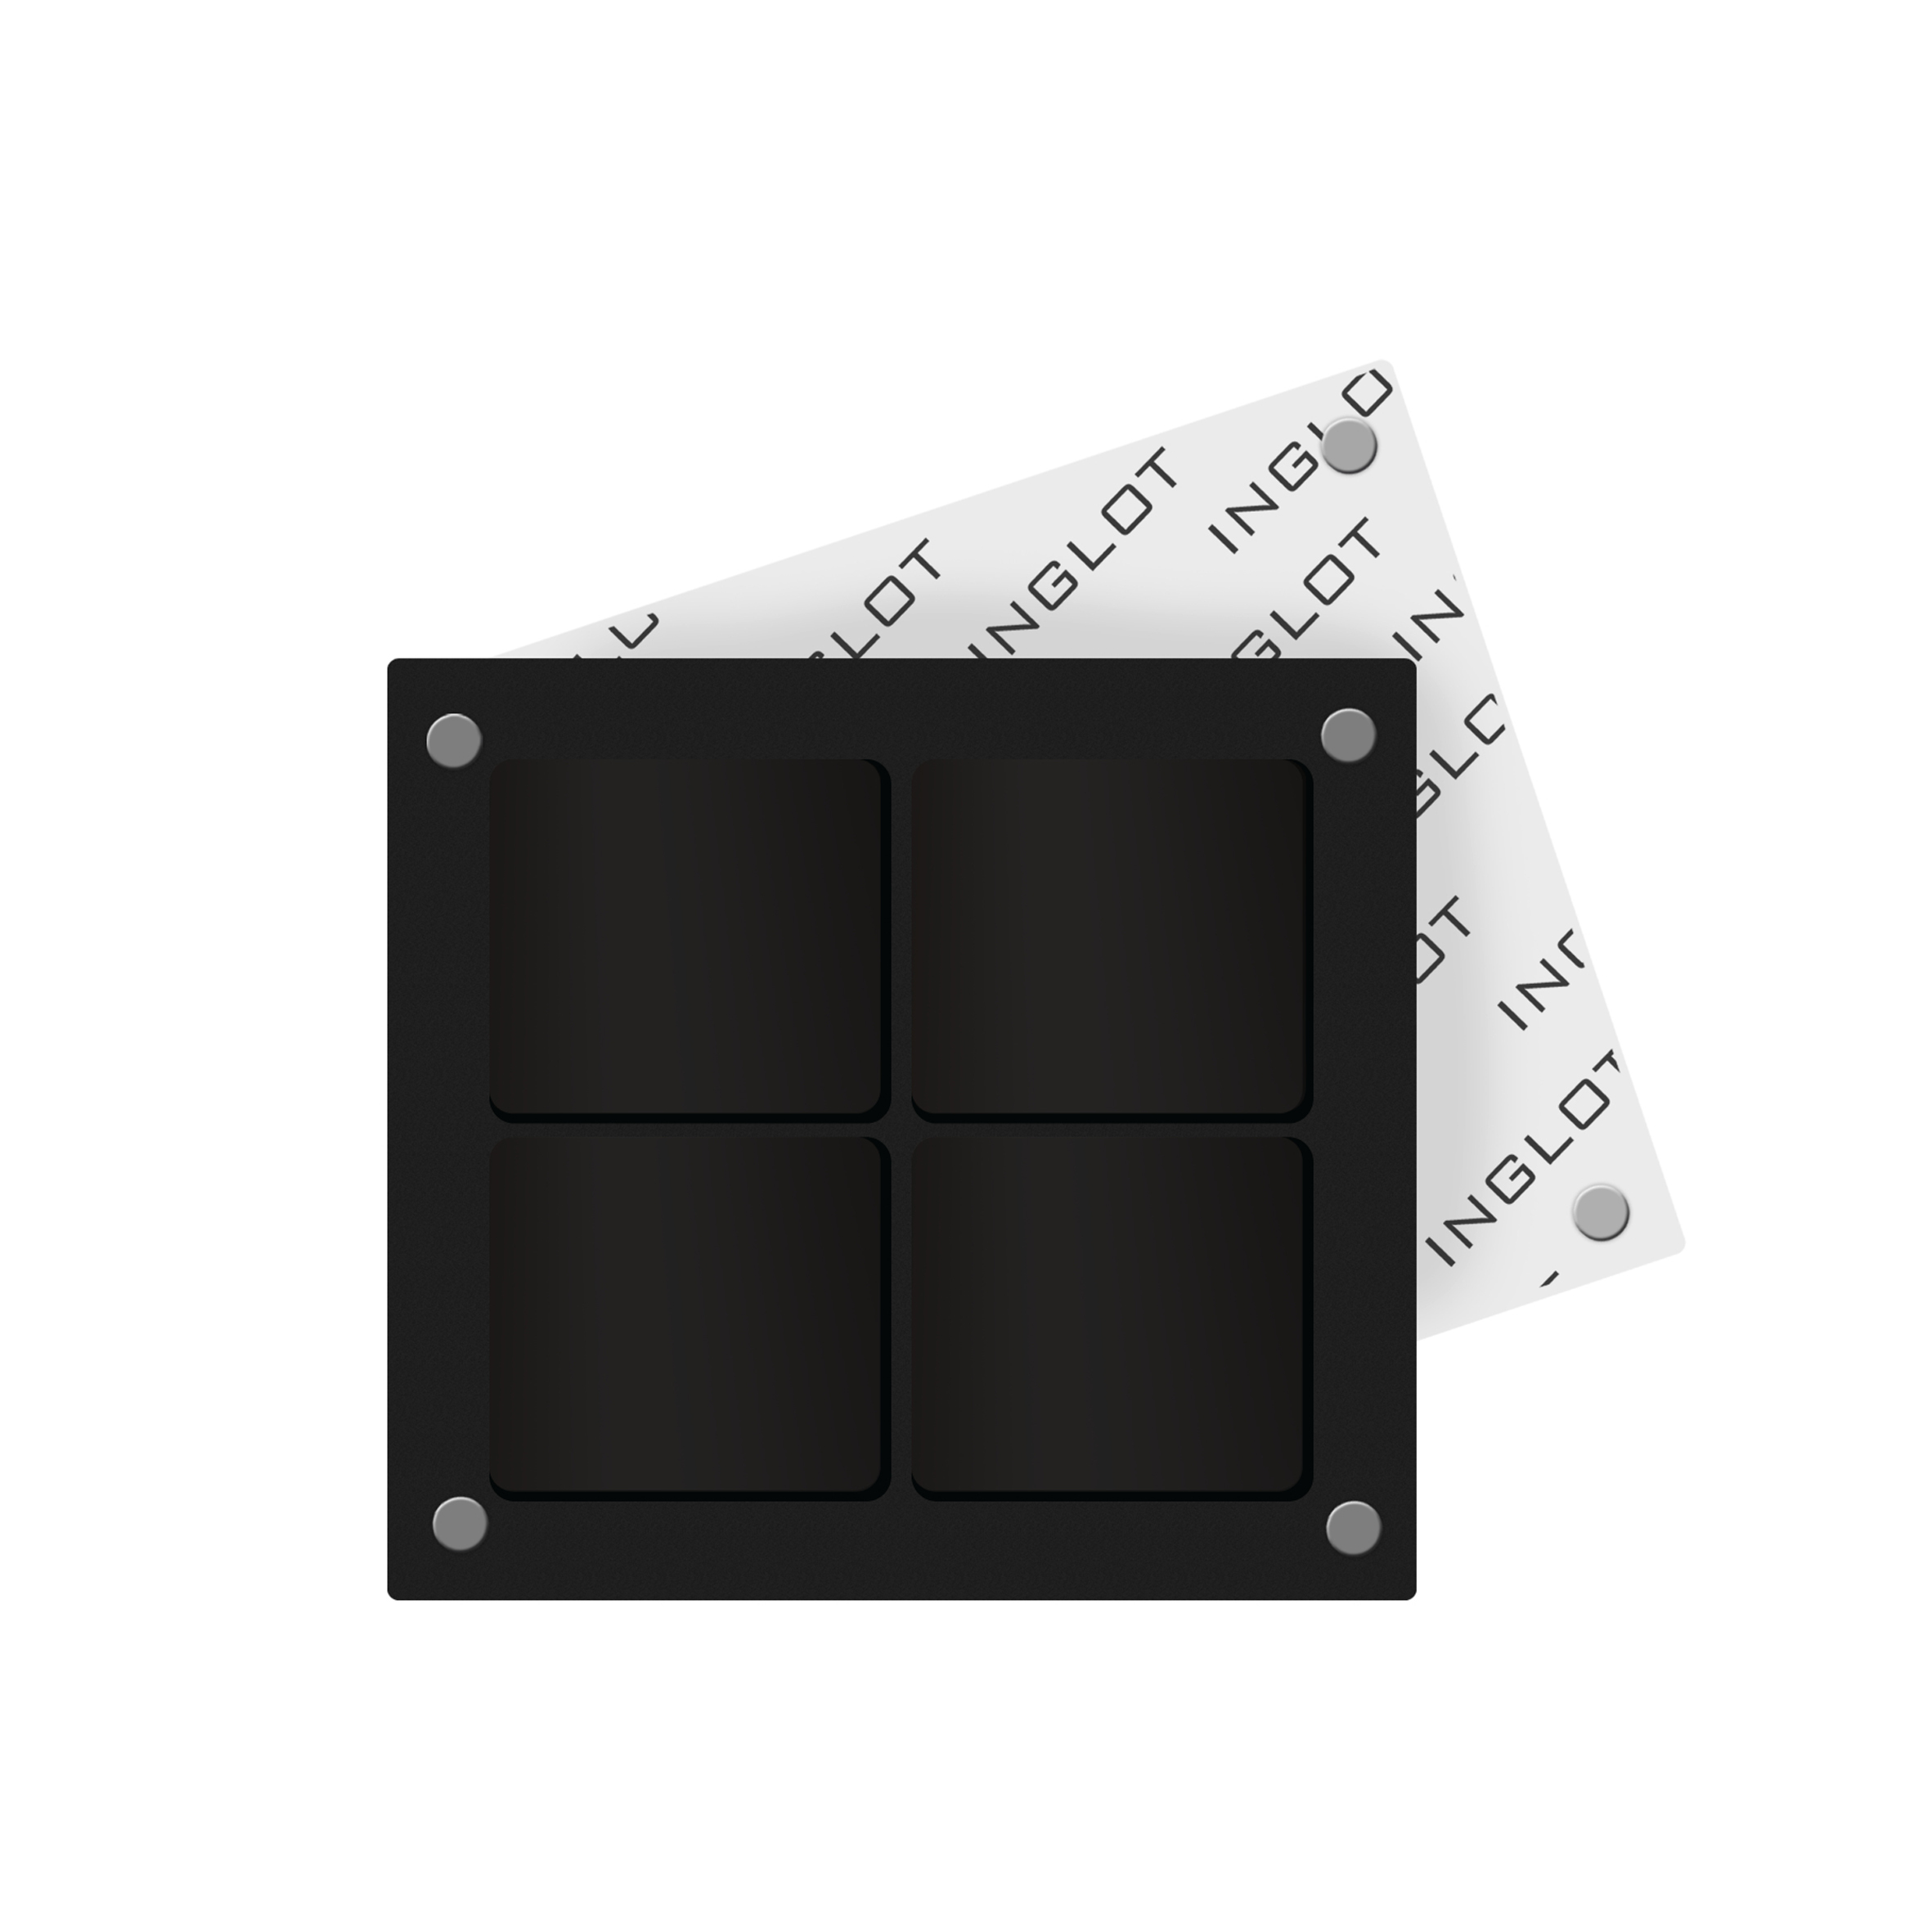 4 Eye Shadow Square.jpg